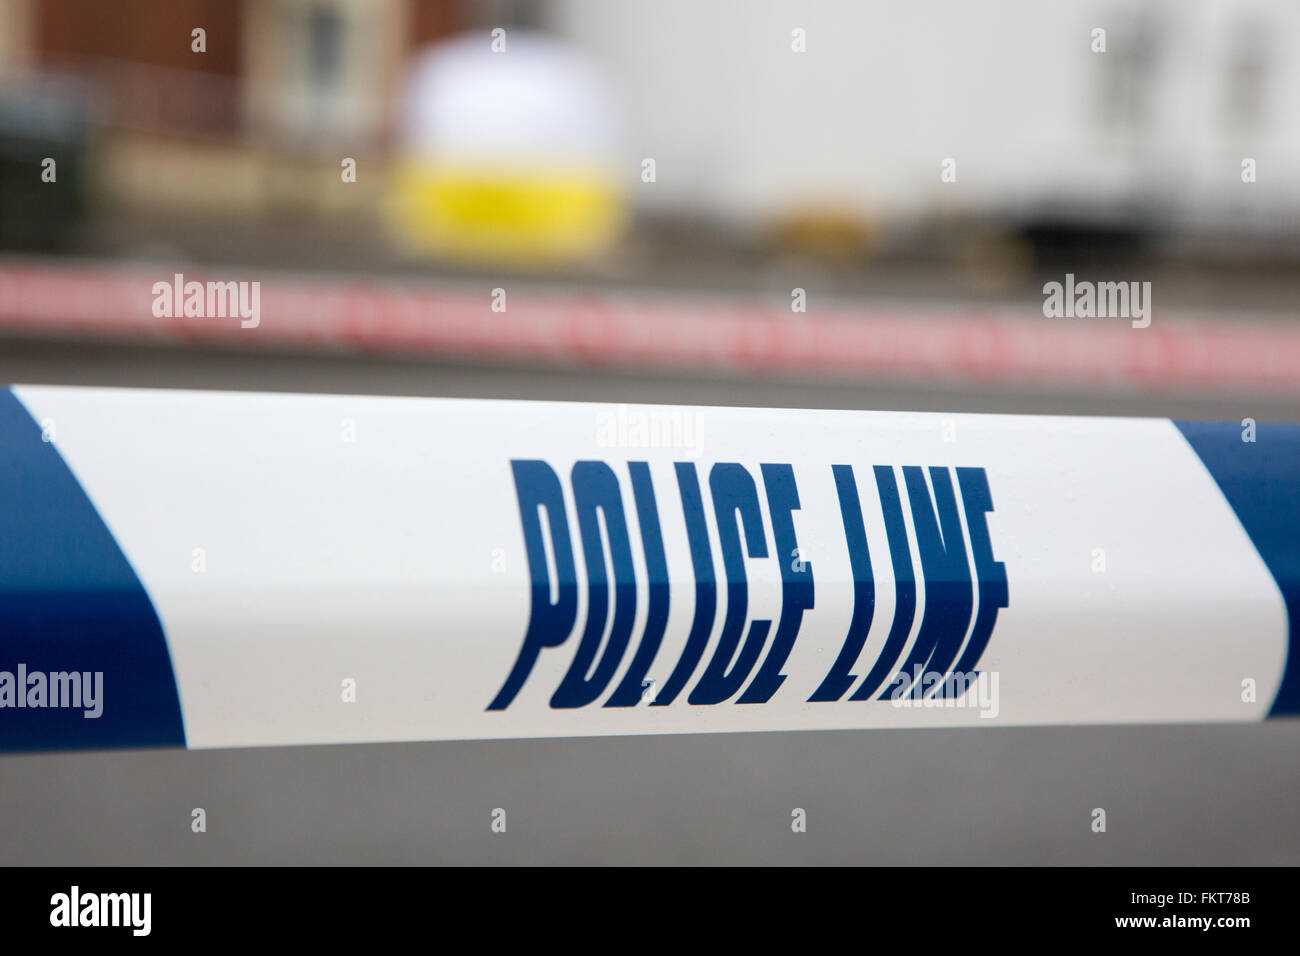 Police line around an incident in the street in front of a forensics tent - Stock Image